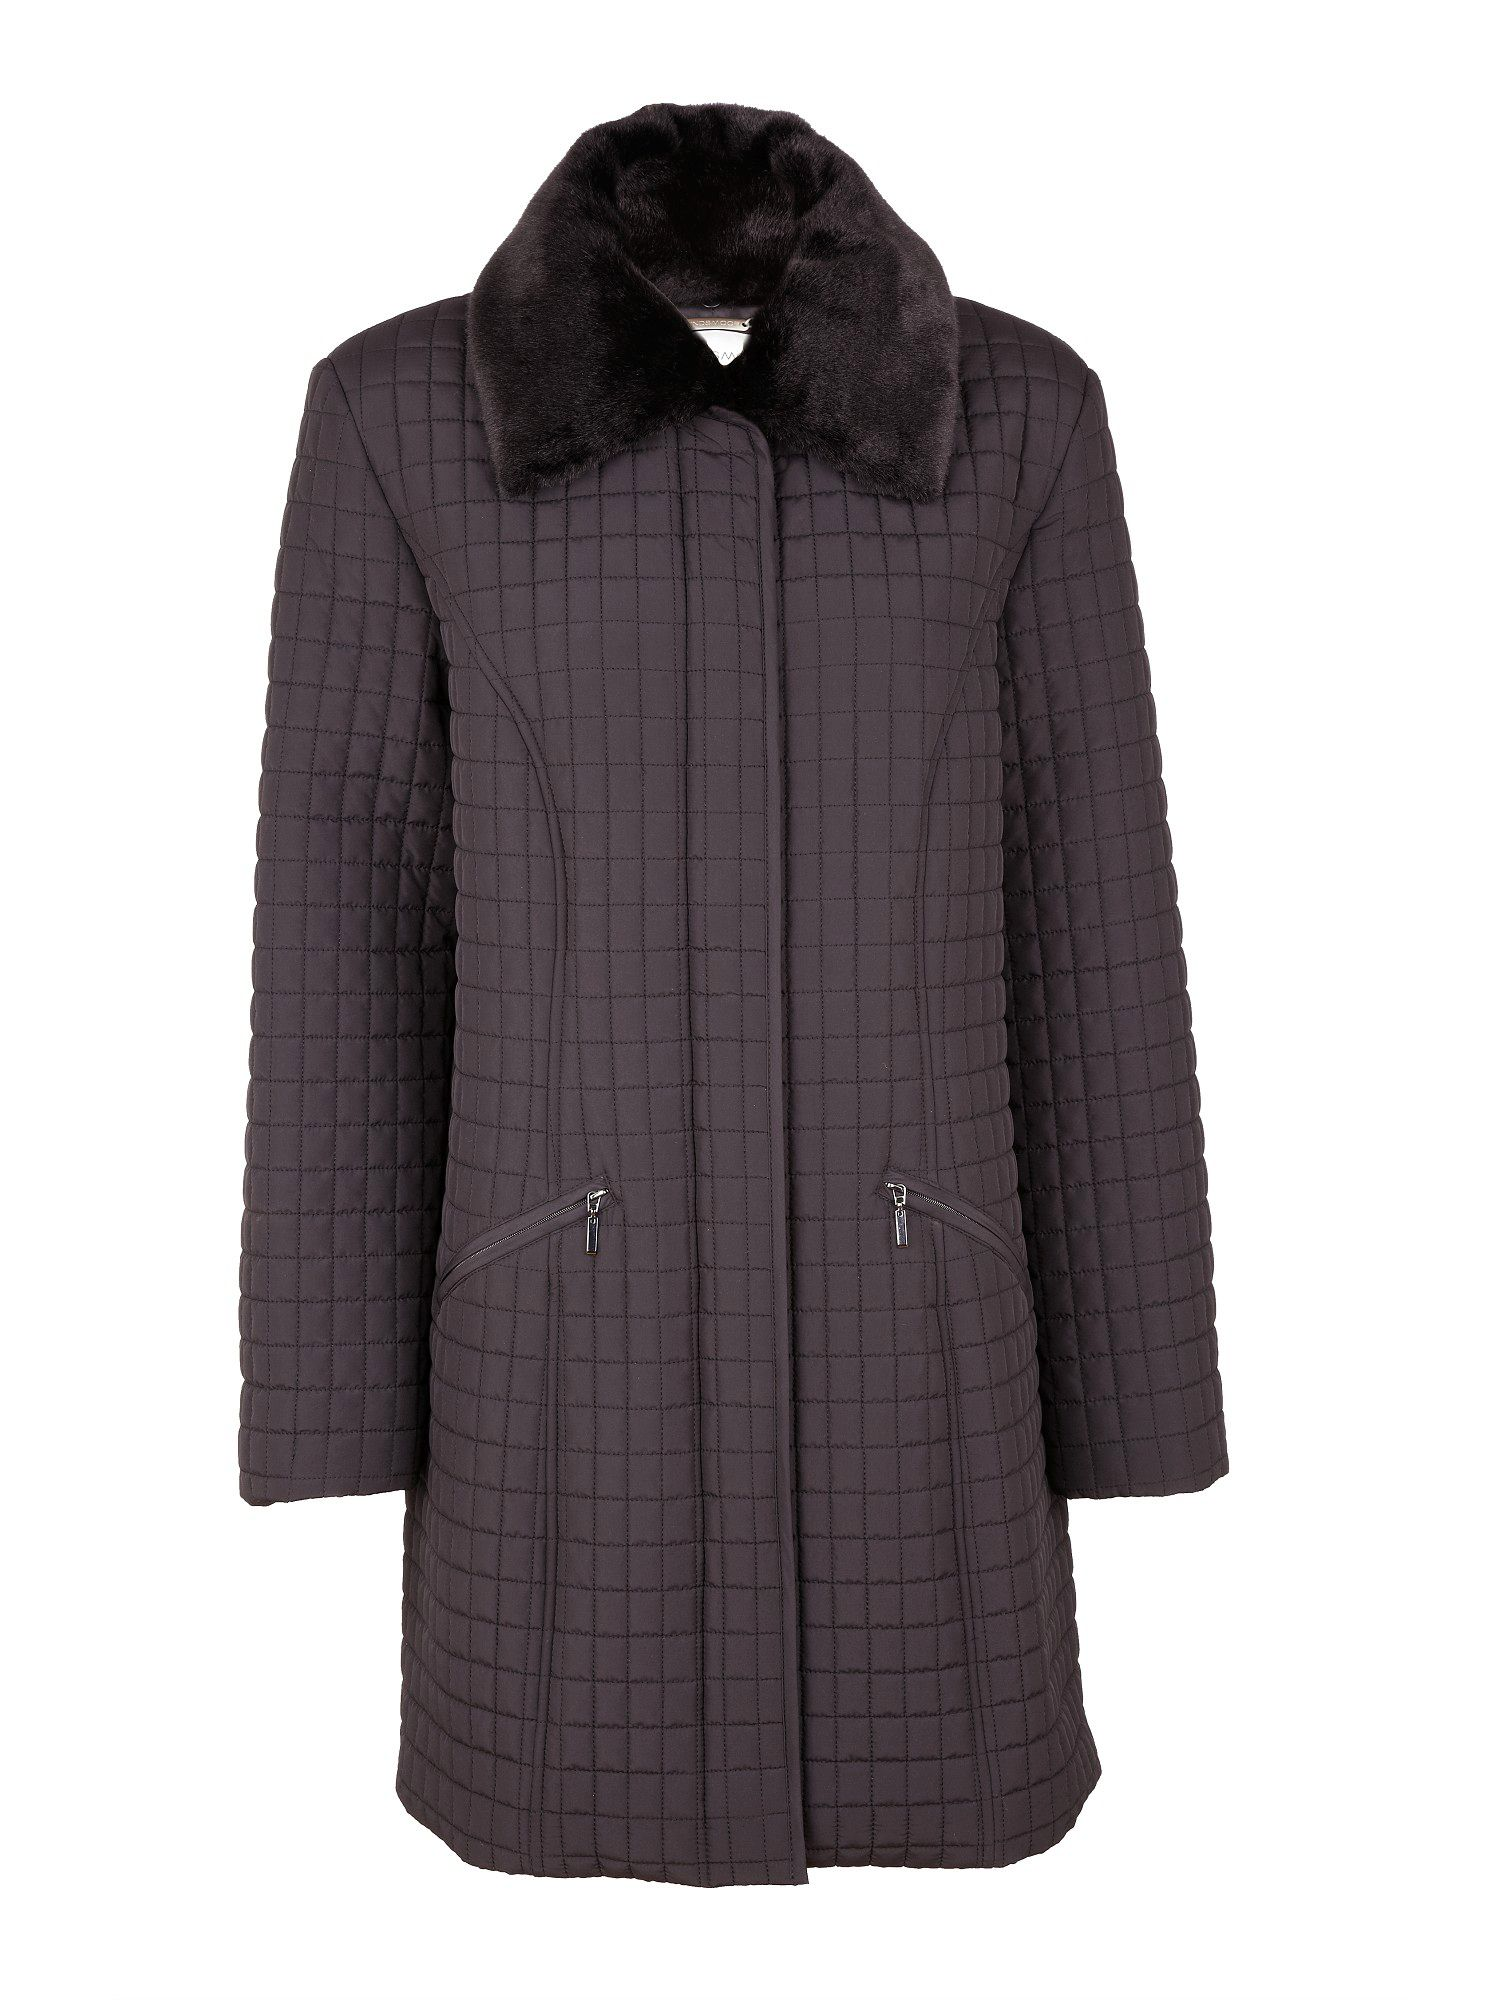 Black animal collar coat